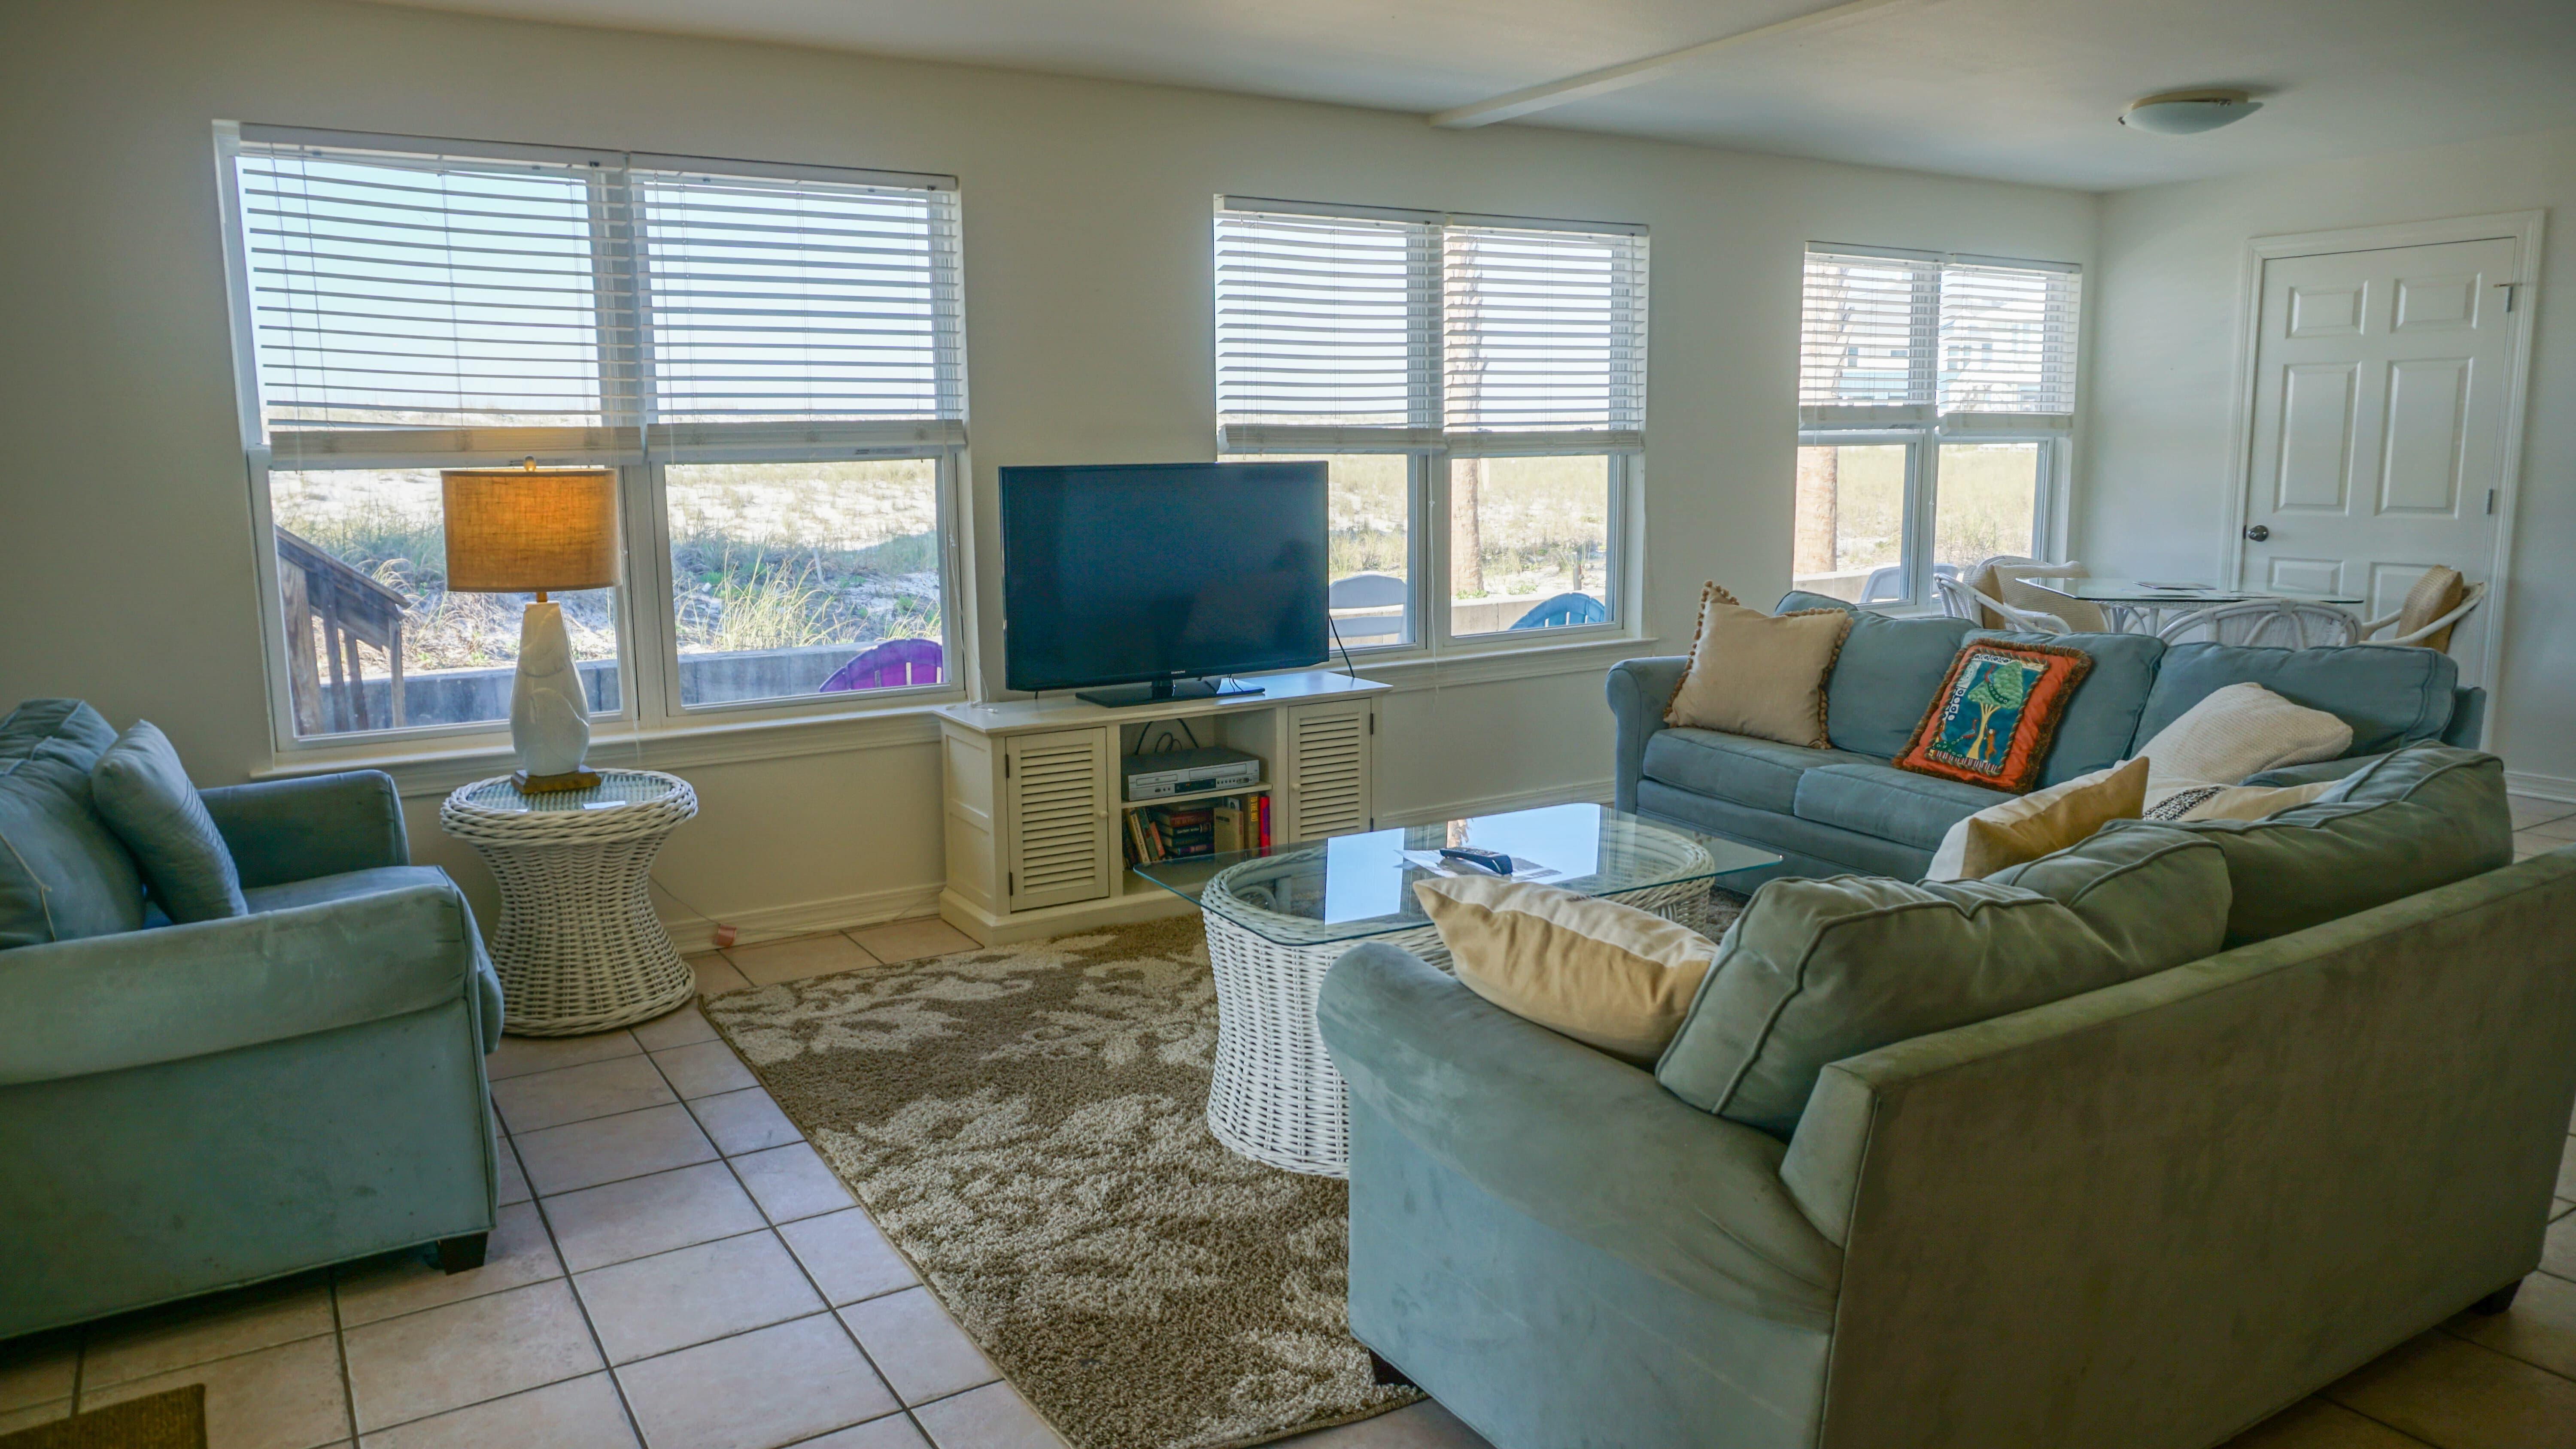 Avenida 14 - 402 House / Cottage rental in Pensacola Beach House Rentals in Pensacola Beach Florida - #15